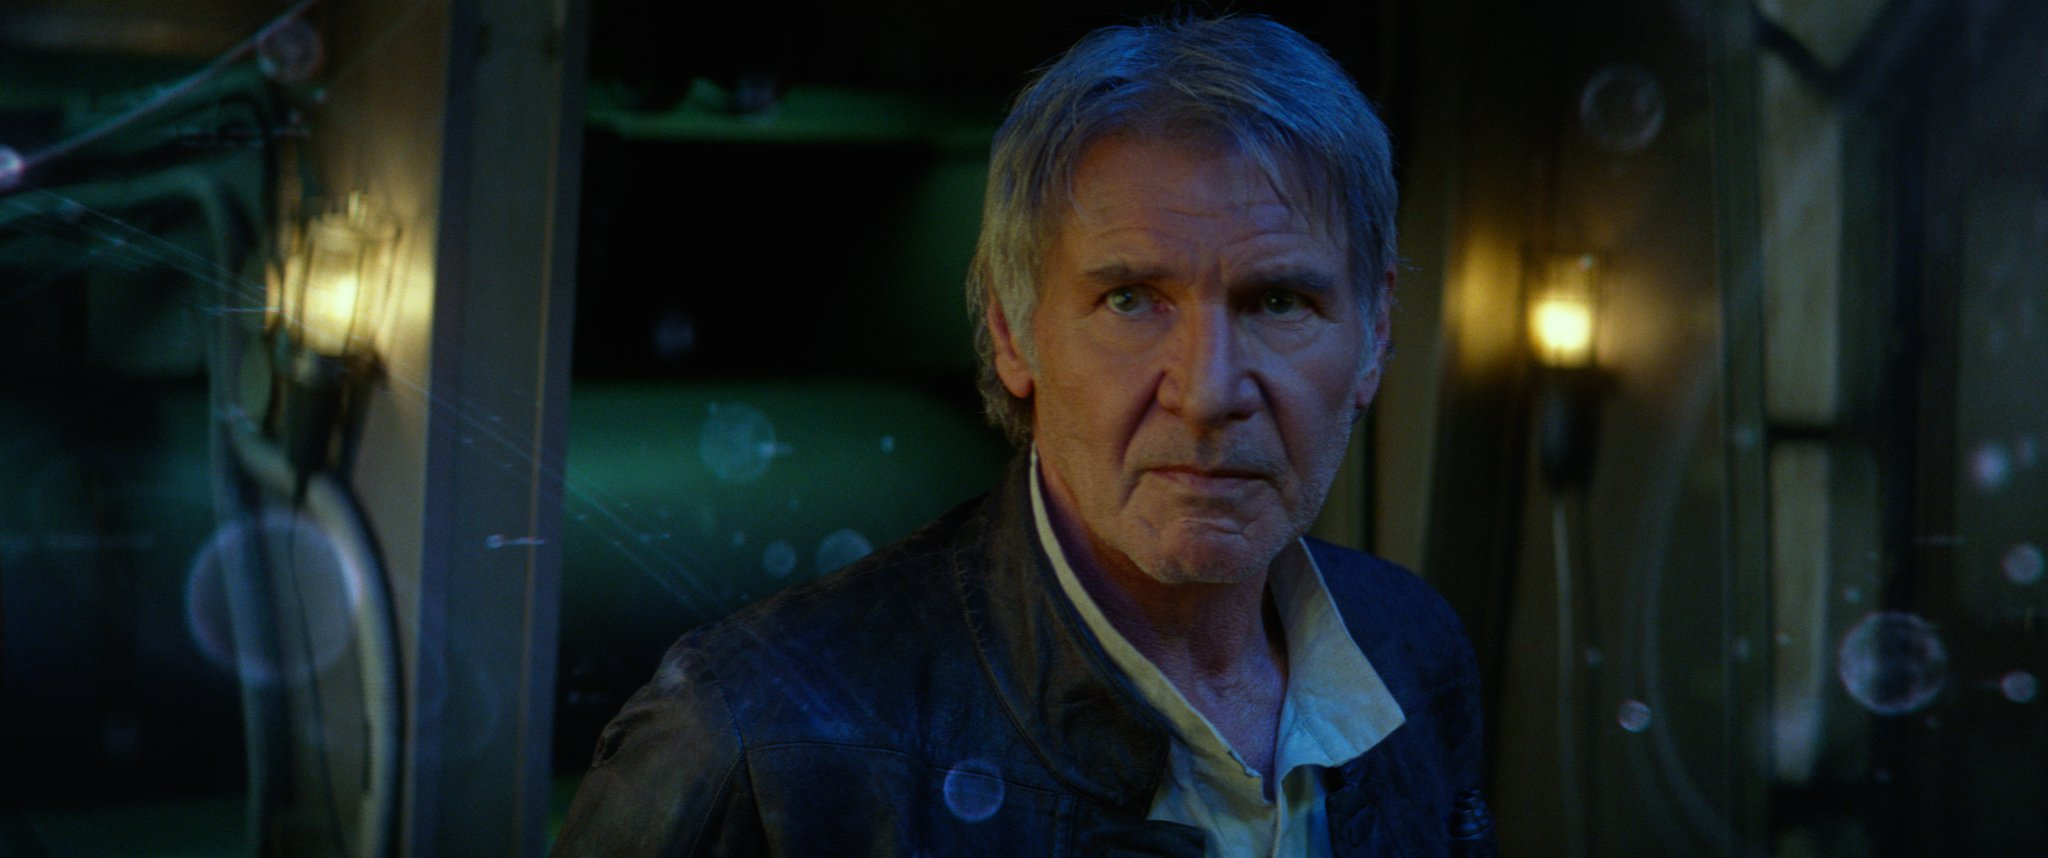 Disney And Lucasfilm Debated Han Solo Death In U0027Star Wars: The Force Awakens U0027